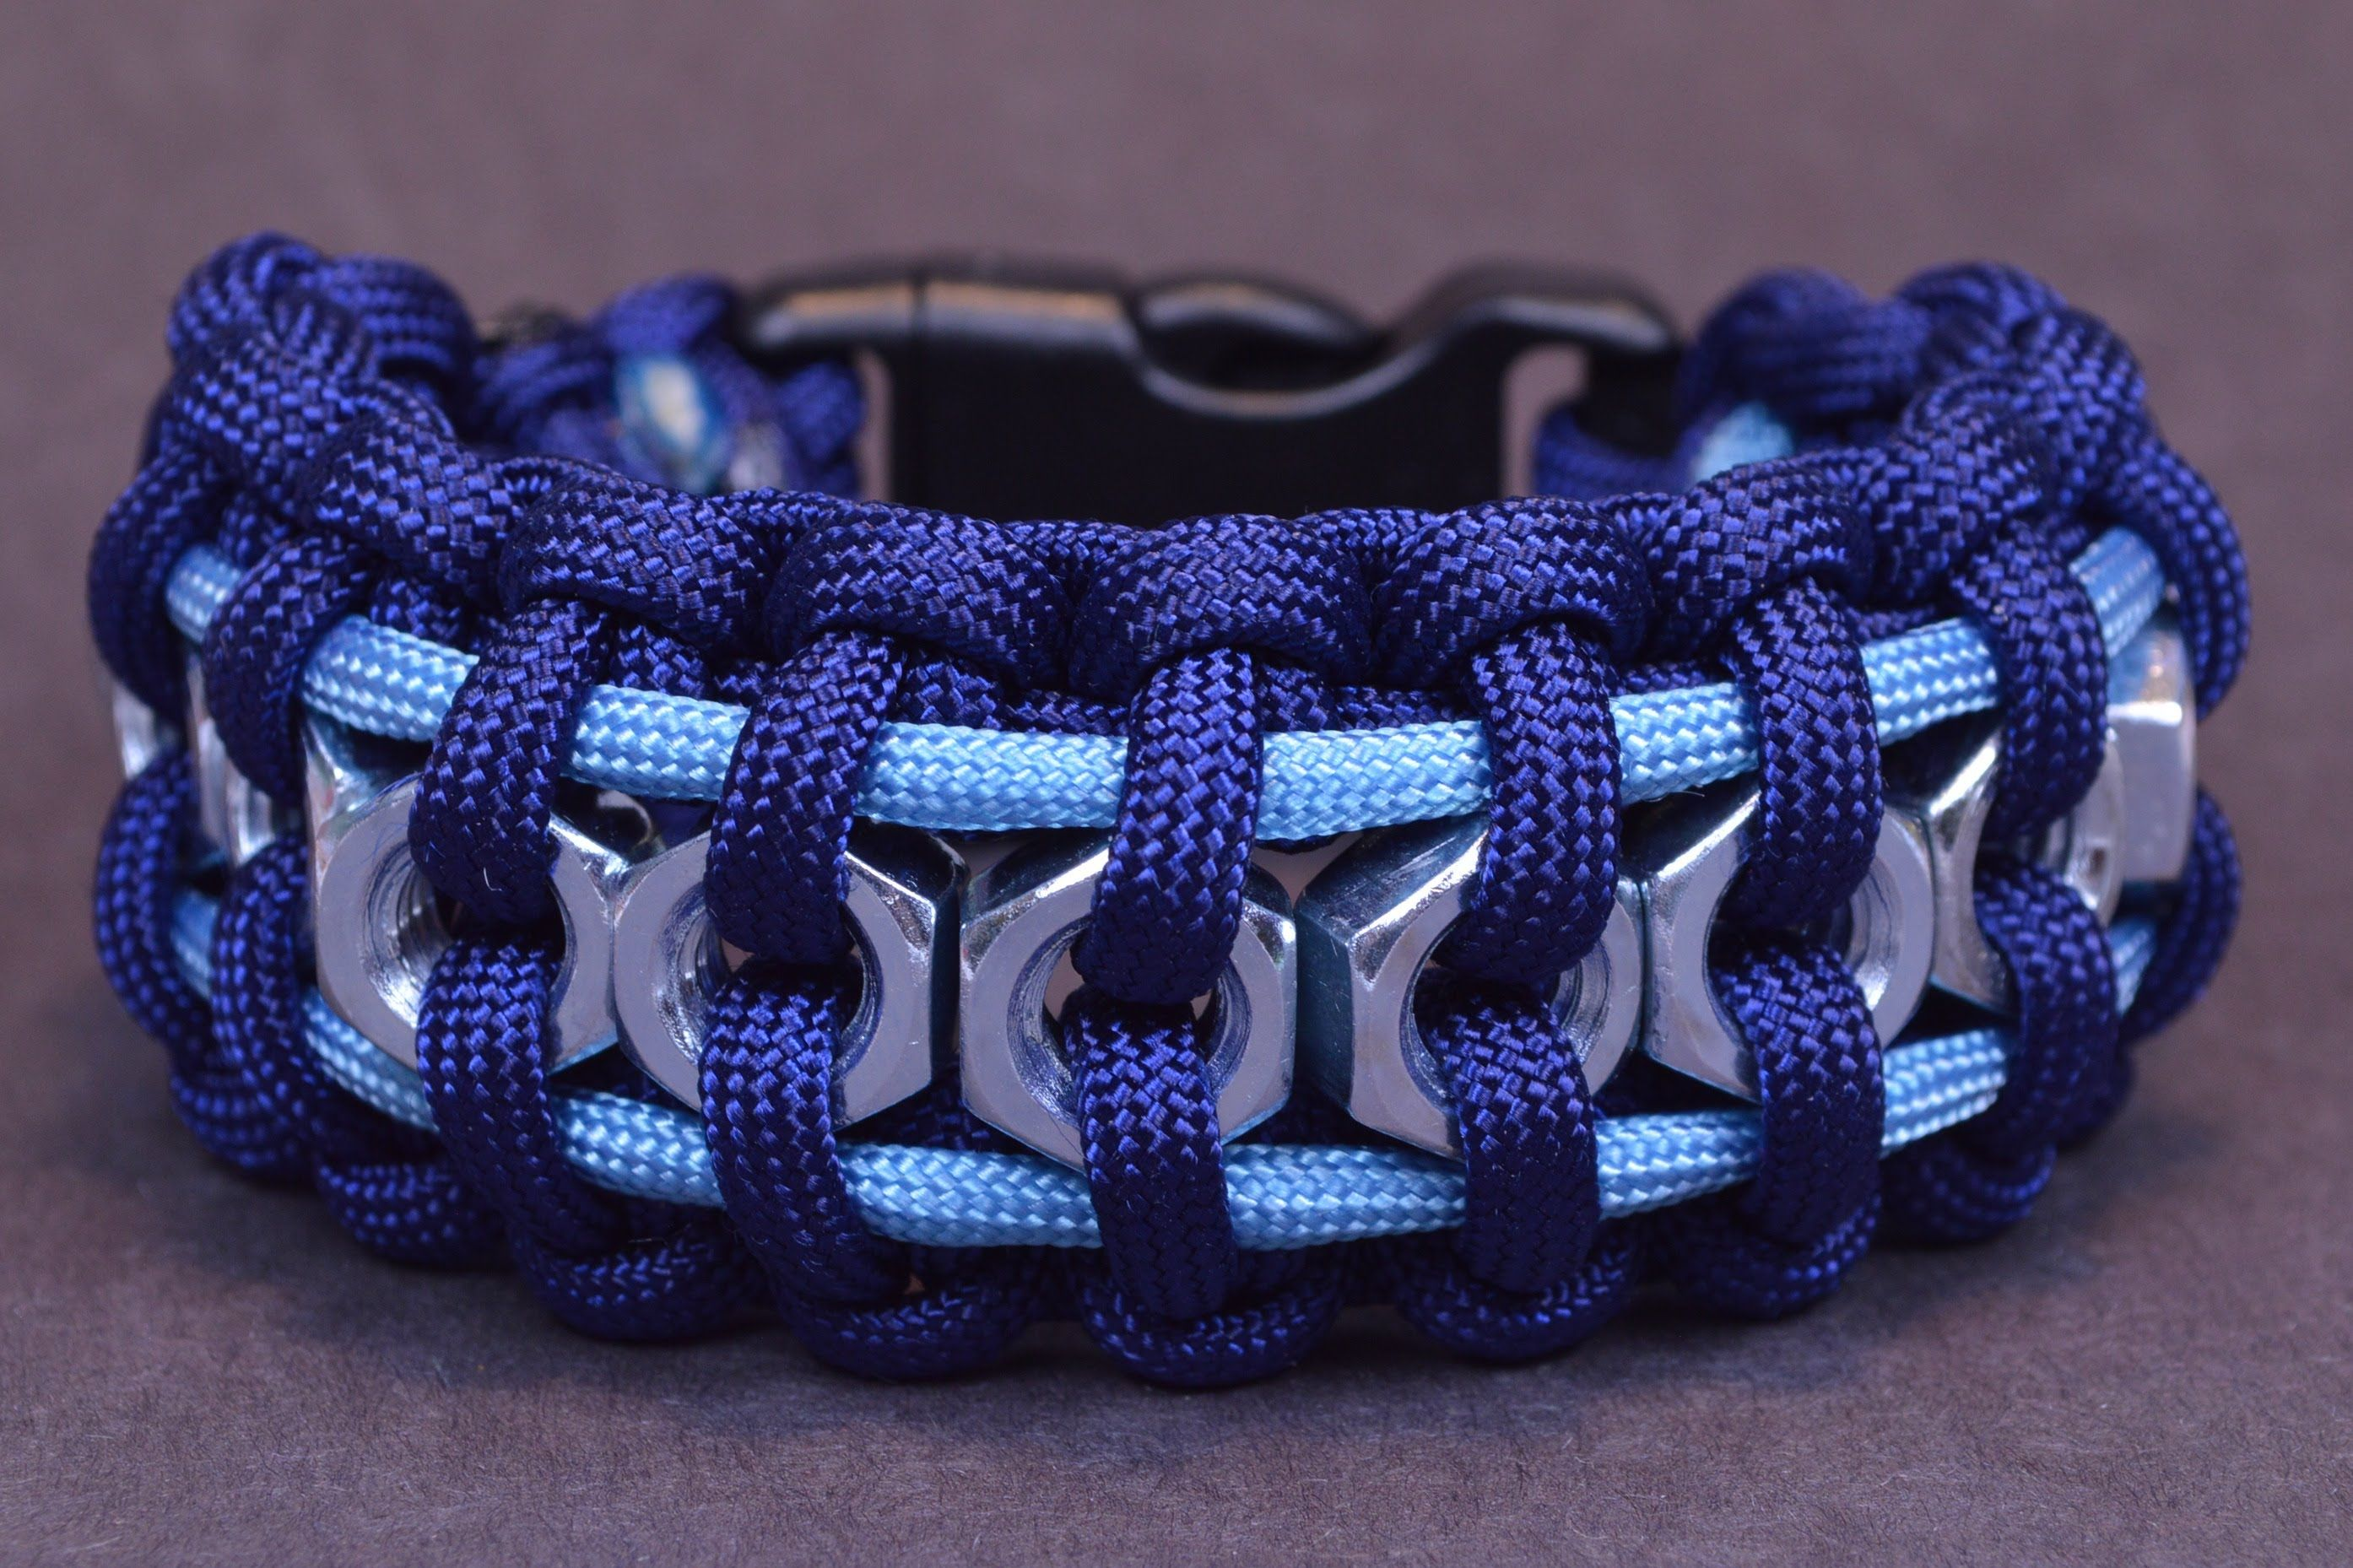 How To Make The Hex Nut Paracord Survival Bracelet